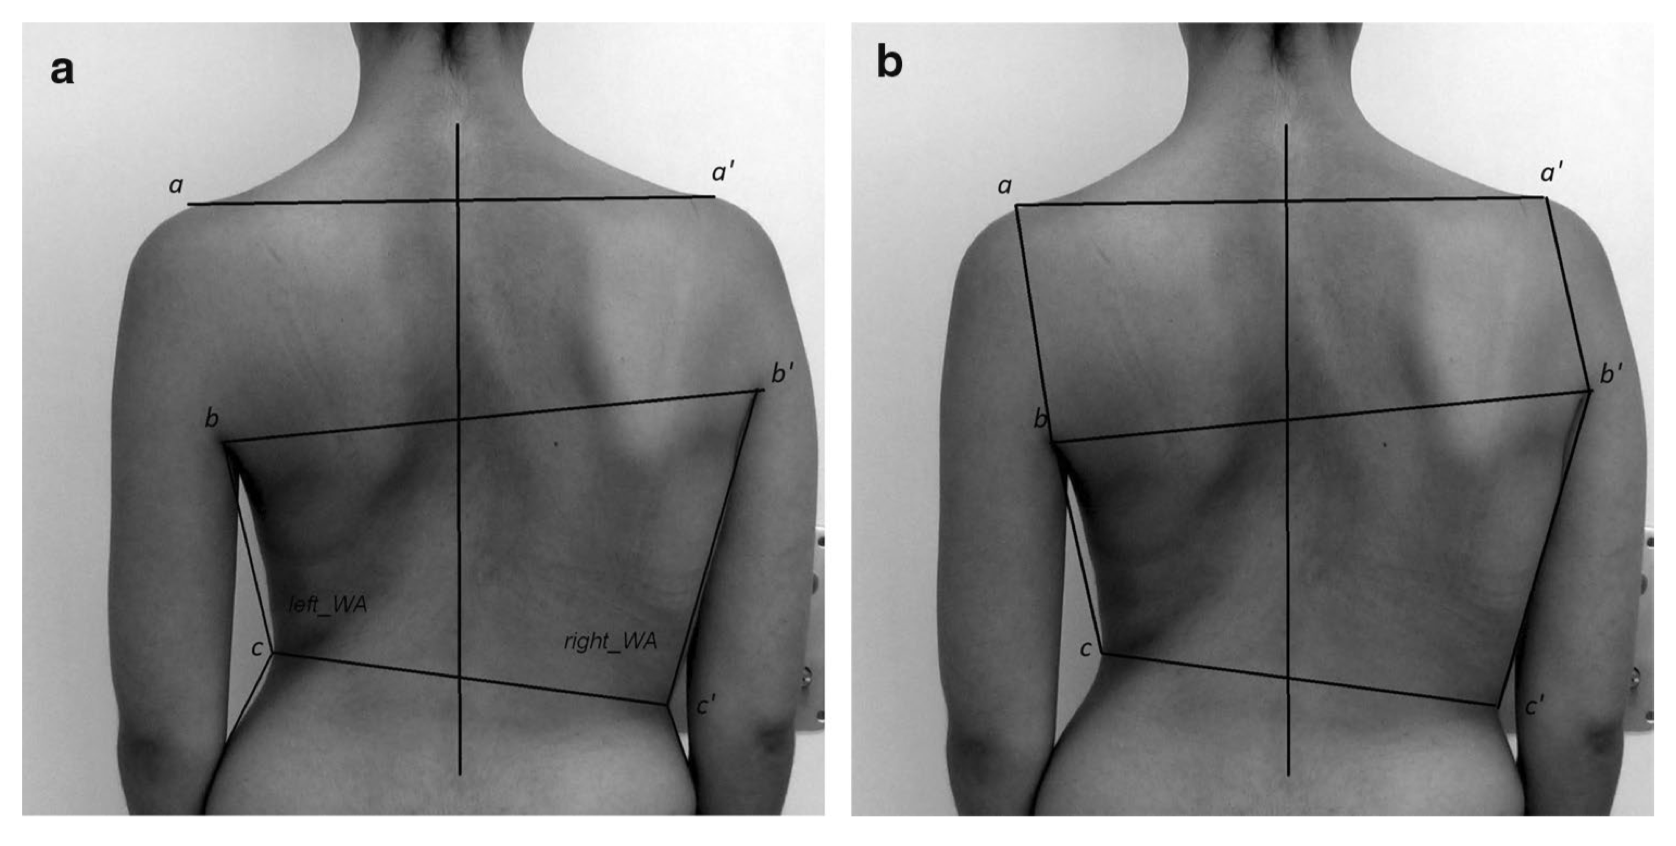 Clinical photography in severe idiopathic scoliosis candidate for surgery: is it a useful tool to differentiate among Lenke patterns?